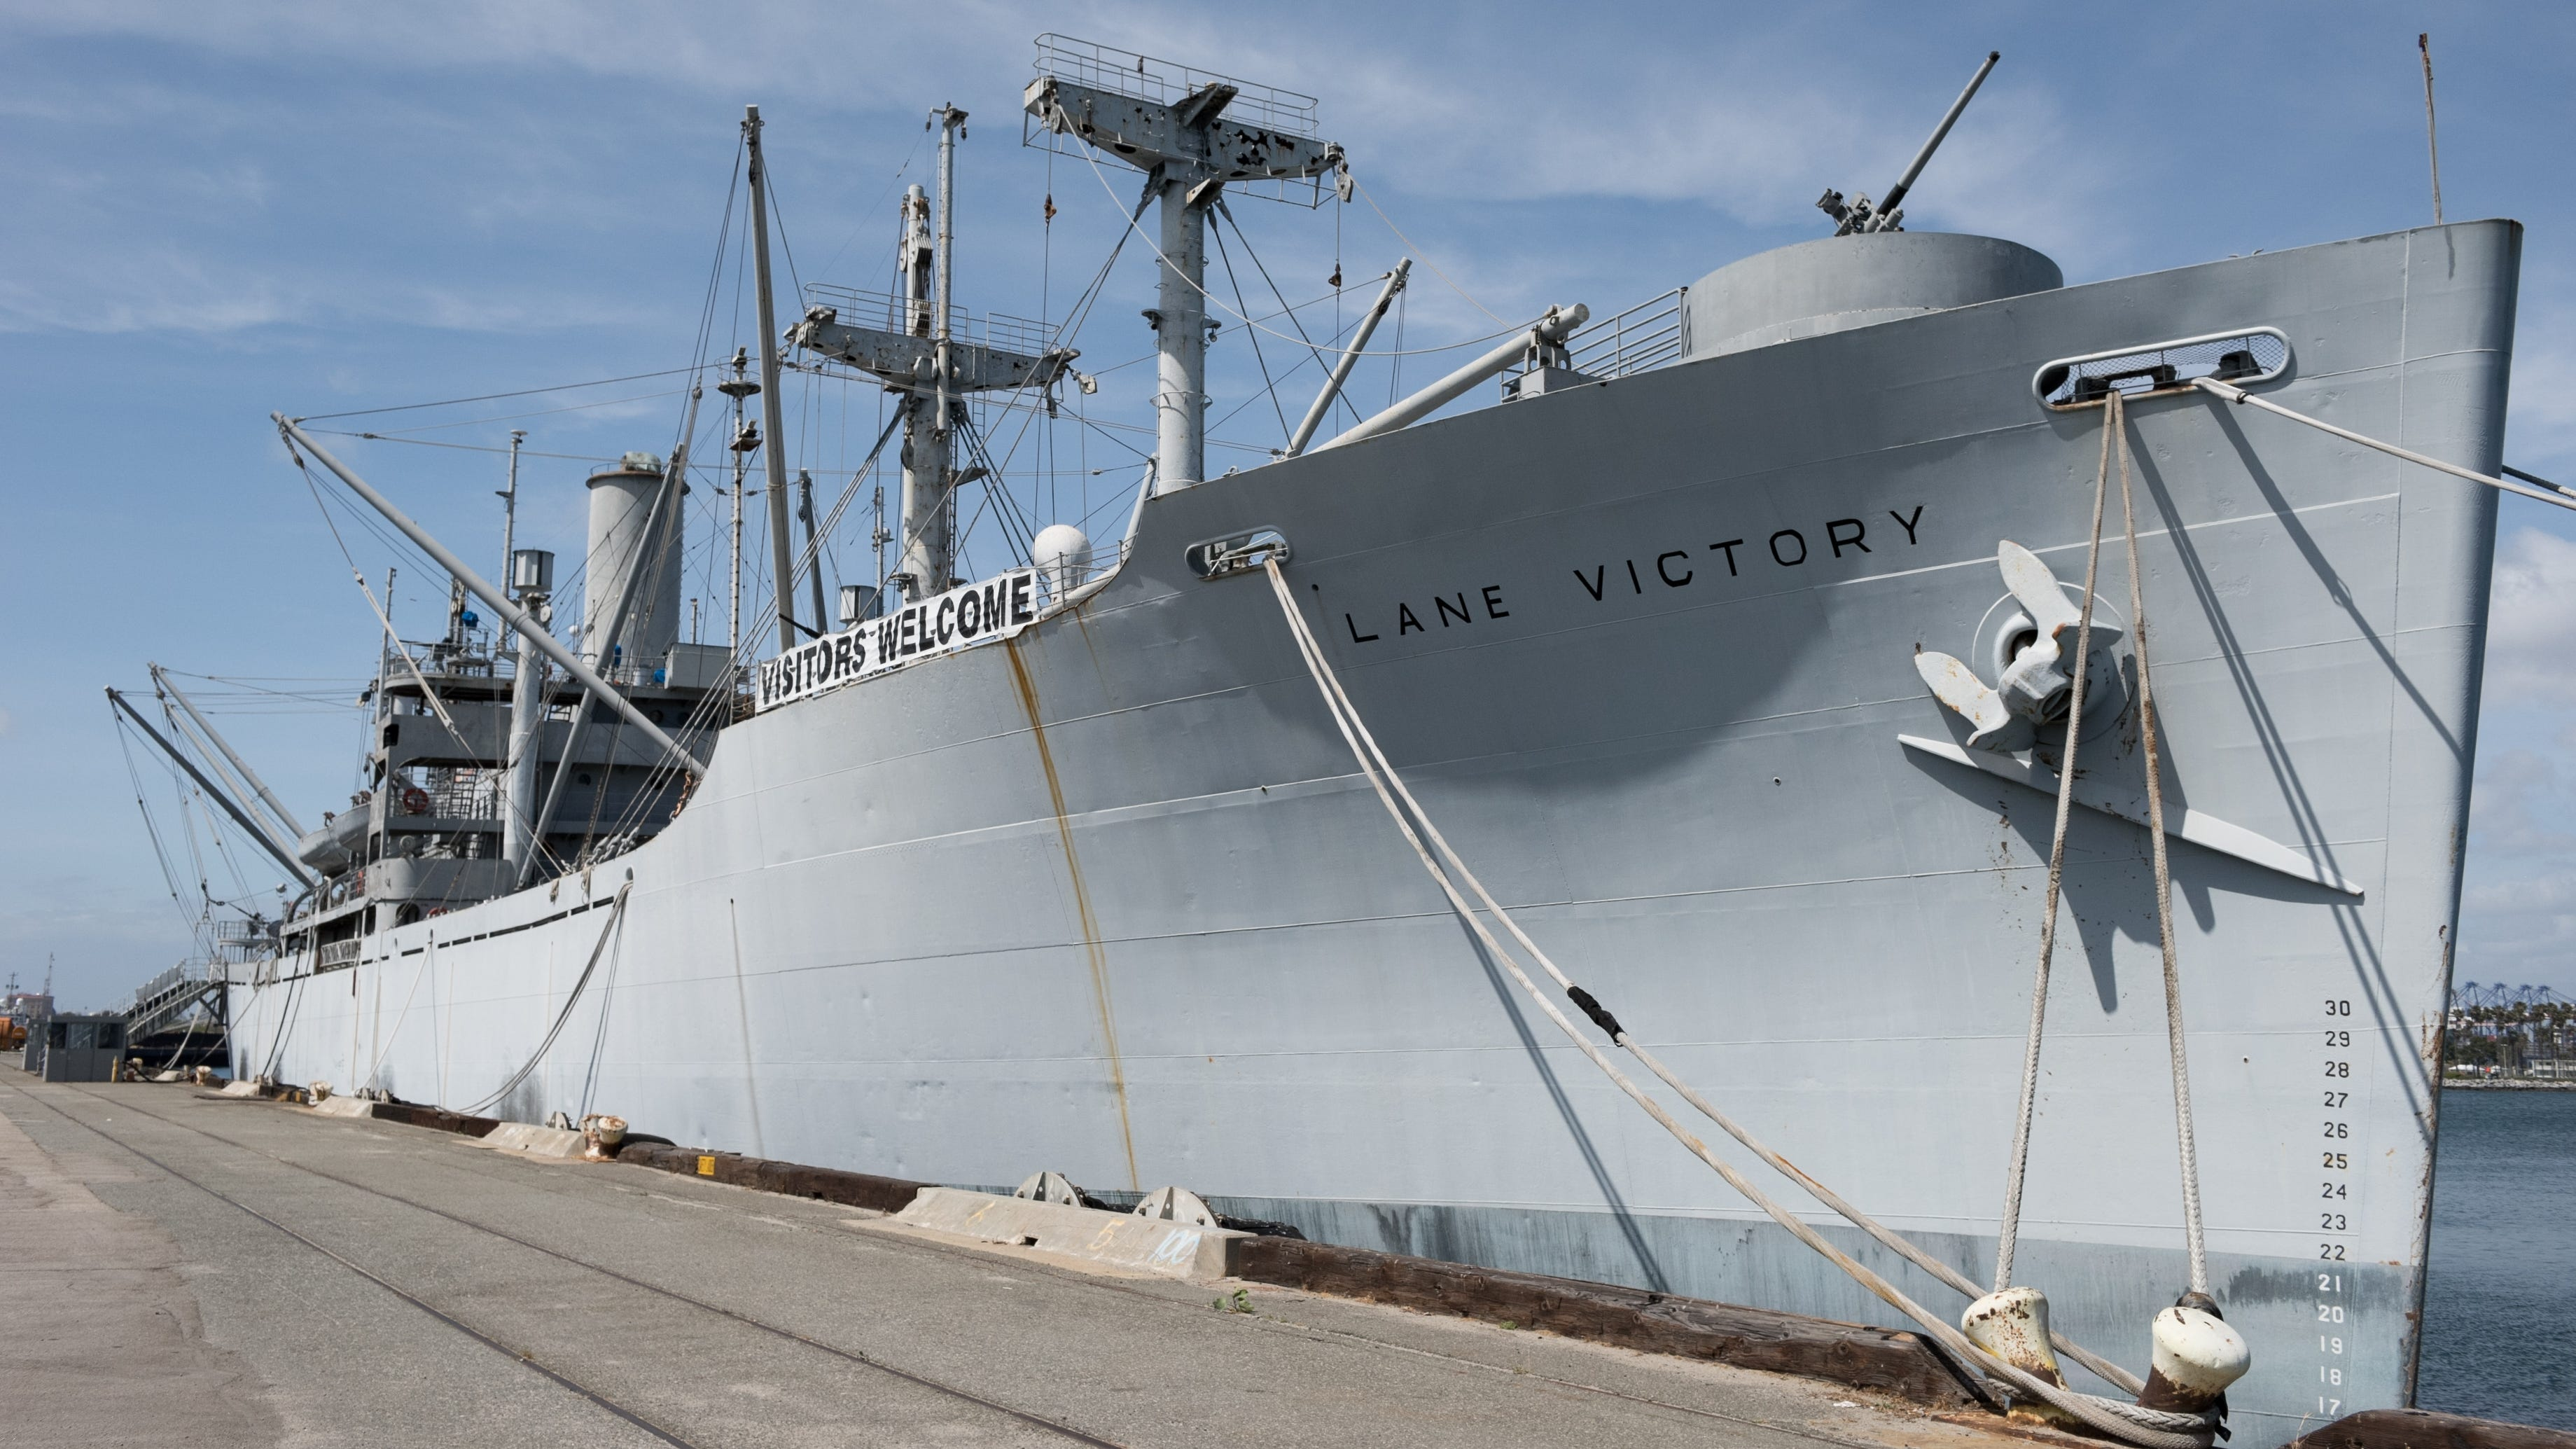 Los Angeles, Calif. - The S.S. Lane Victory docked in the Port of Los Angeles is just one of three remaining Victory ships in the world. The Lane Victory is fighting a losing battle of rust and deterioration and the volunteers overseeing her upkeep are struggling to generate funds for restoration and repairs. Los Angeles, Calif. - The S.S. Lane Victory docked in the Port of Los Angeles is just one of three remaining Victory ships in the world. The Lane Victory is fighting a losing battle of rust and deterioration and the volunteers overseeing her upkeep are struggling to generate funds for restoration and repairs. (Via OlyDrop)